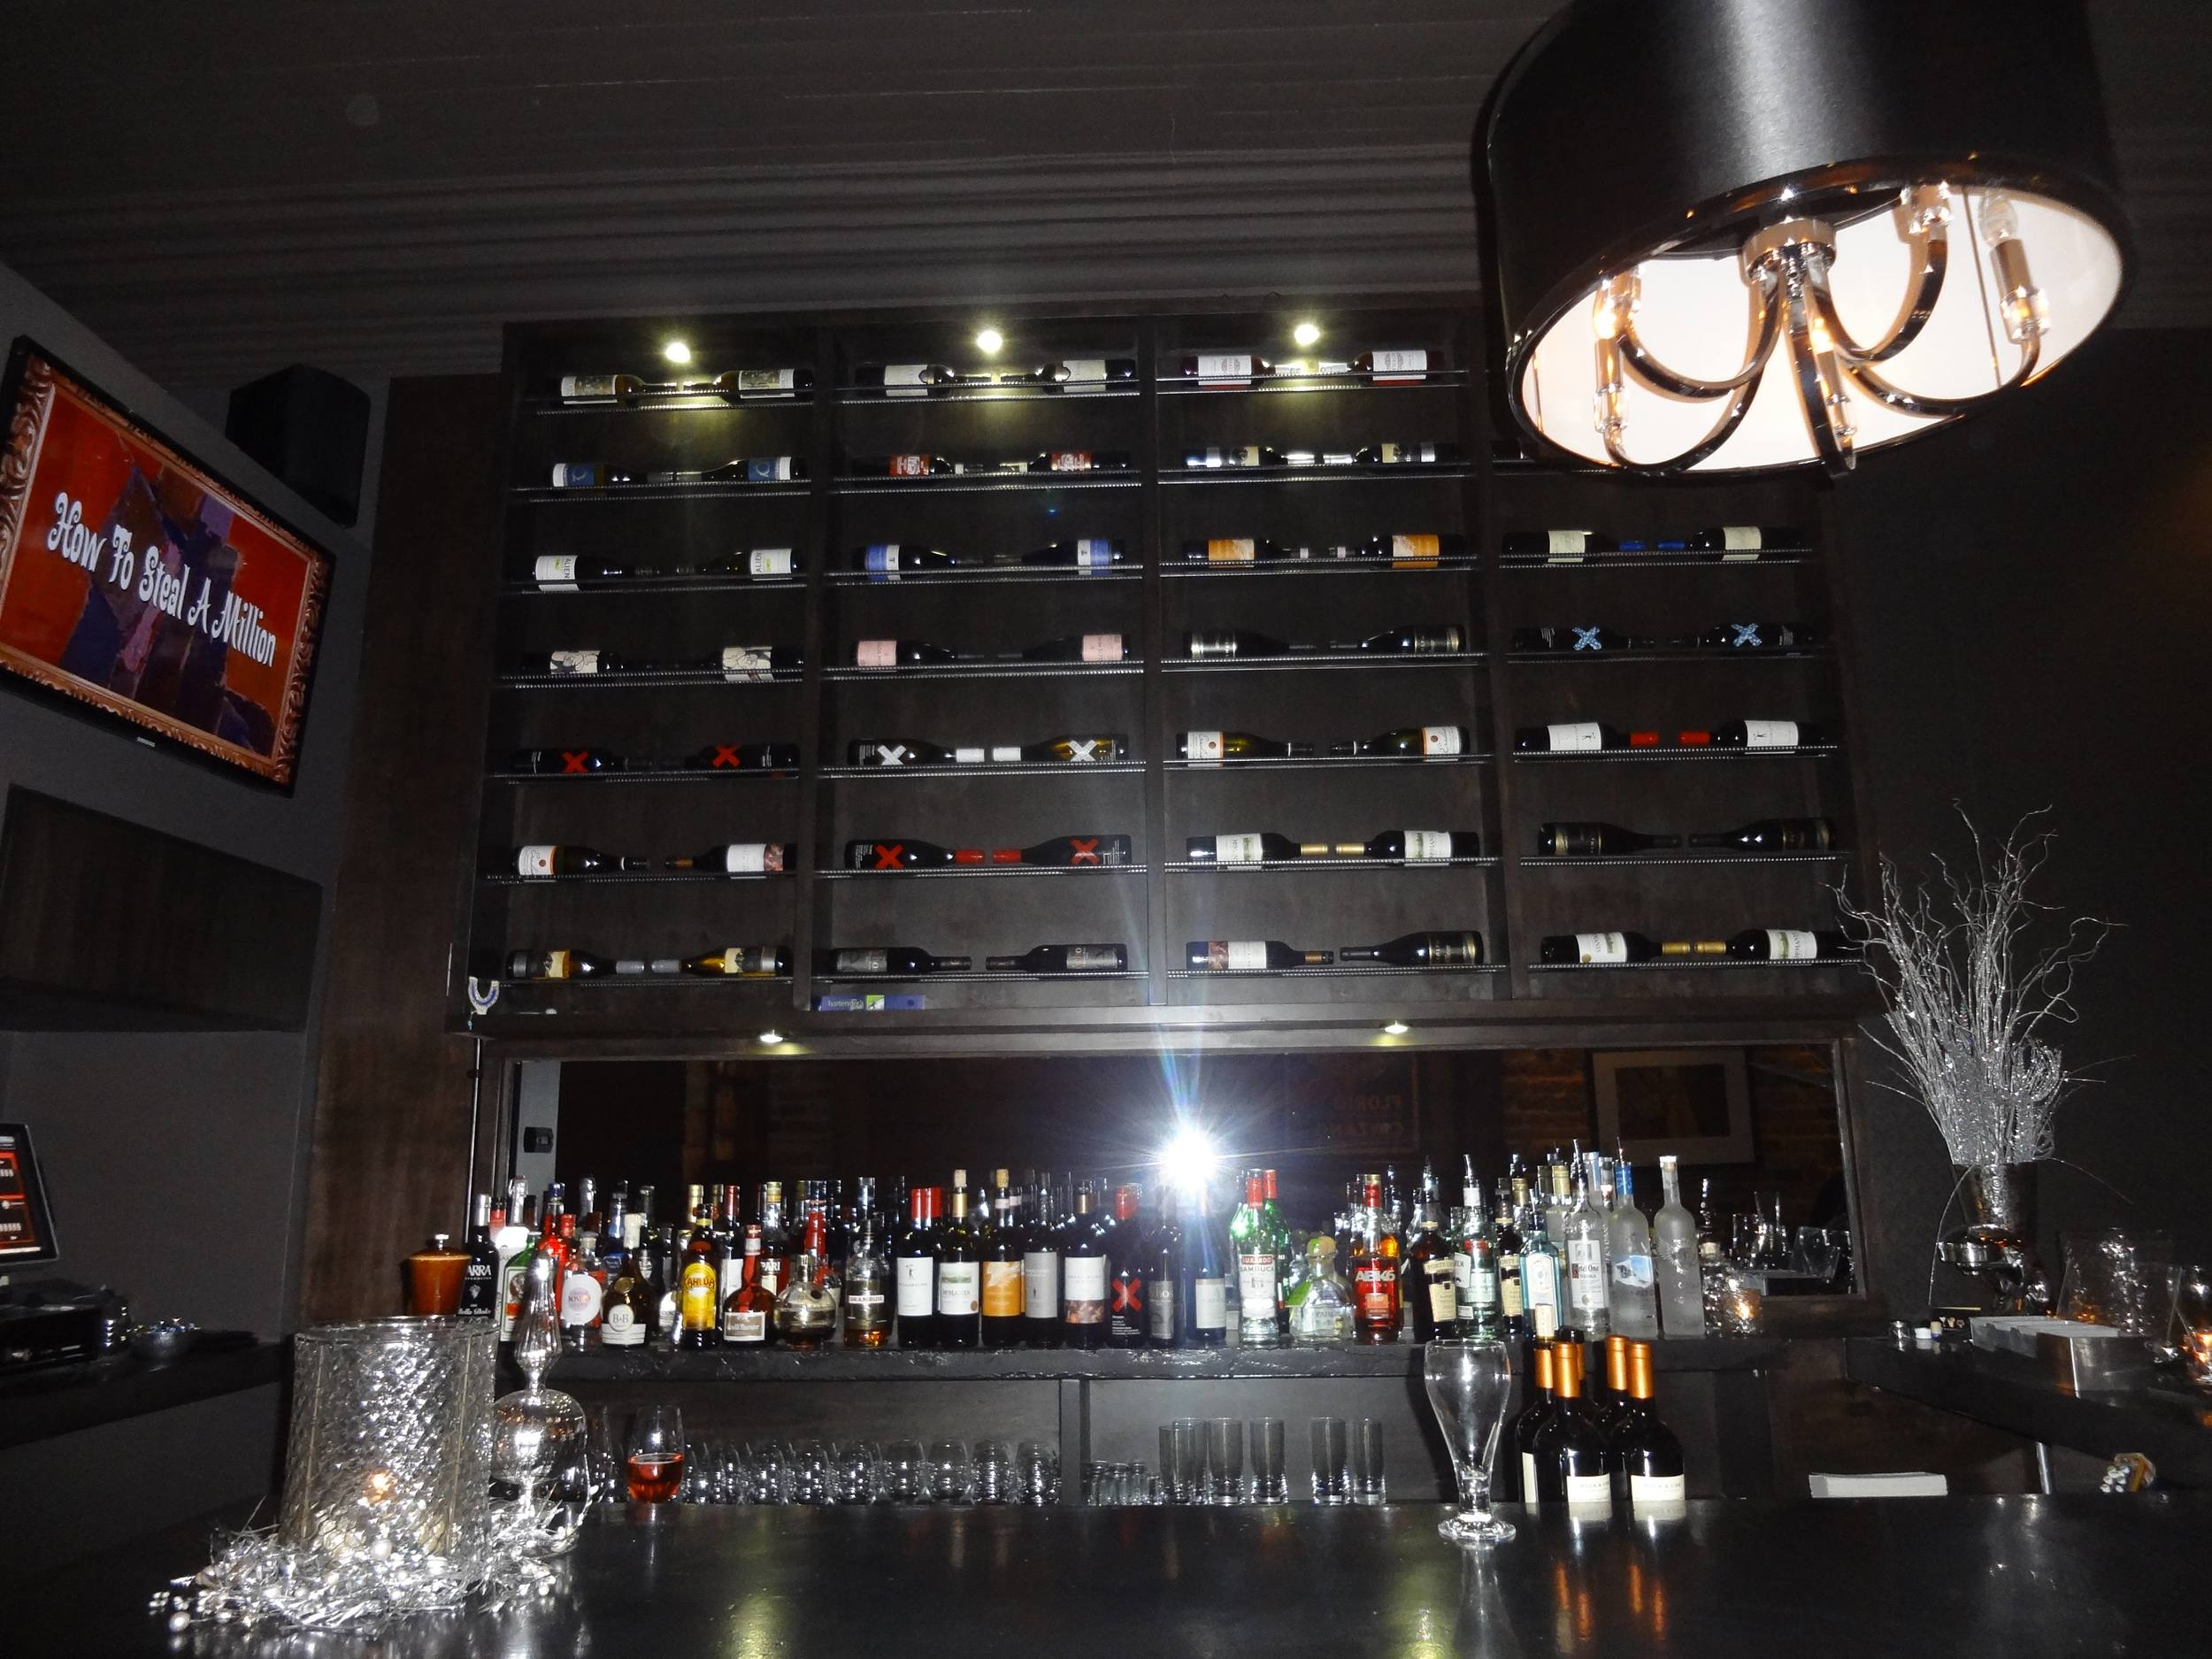 The Best Looking Bar Ever !!!